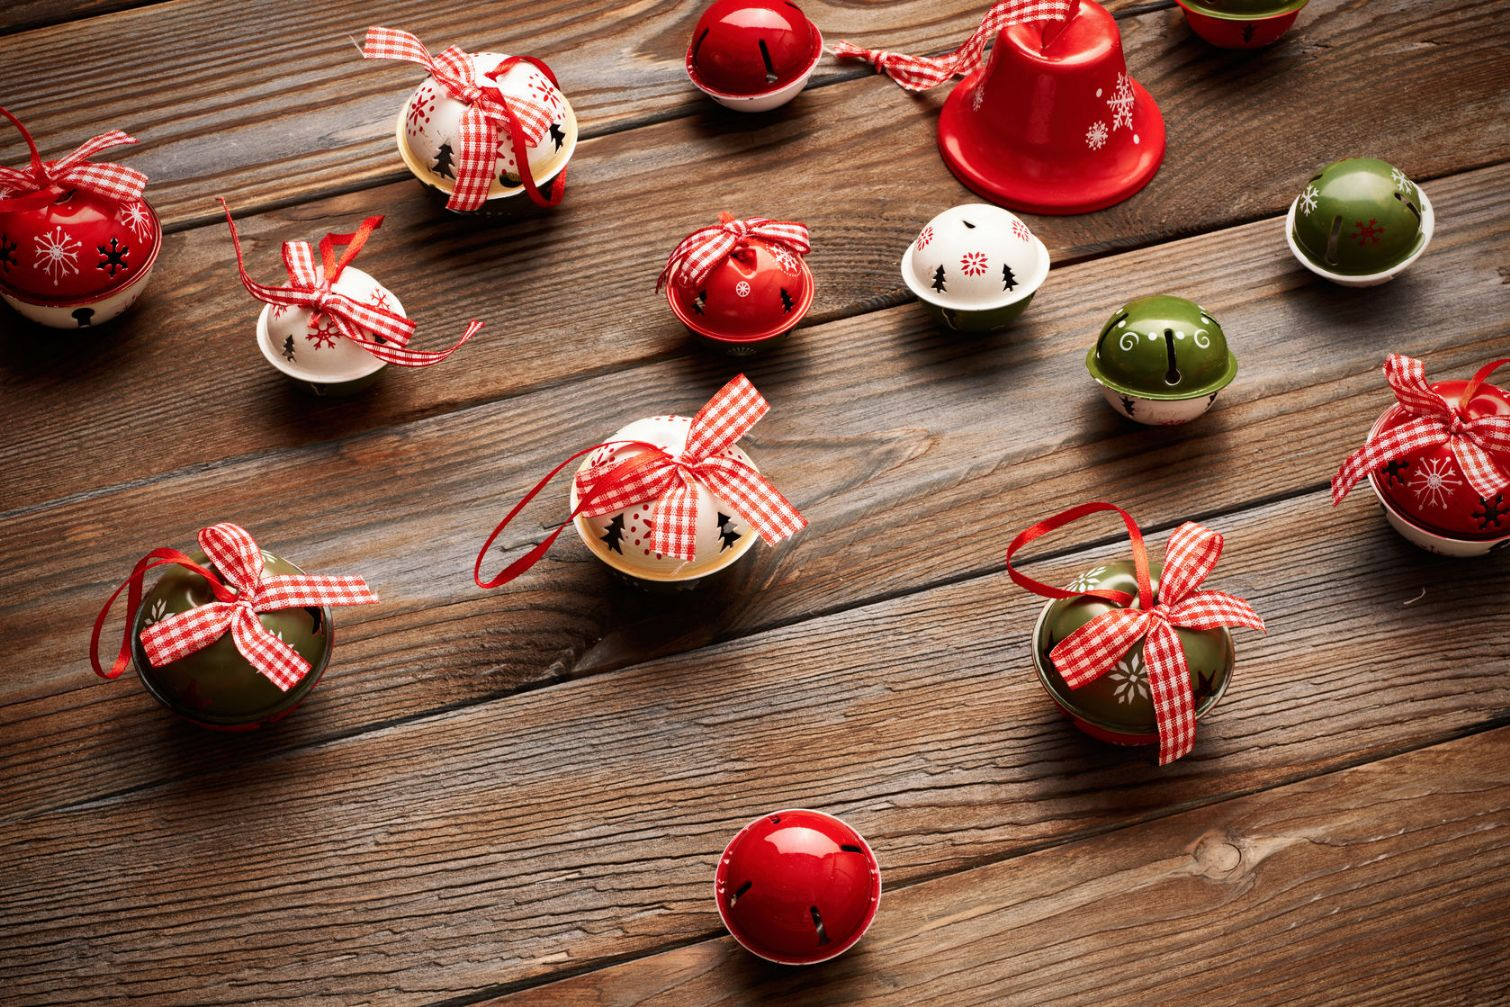 Themed holiday bells